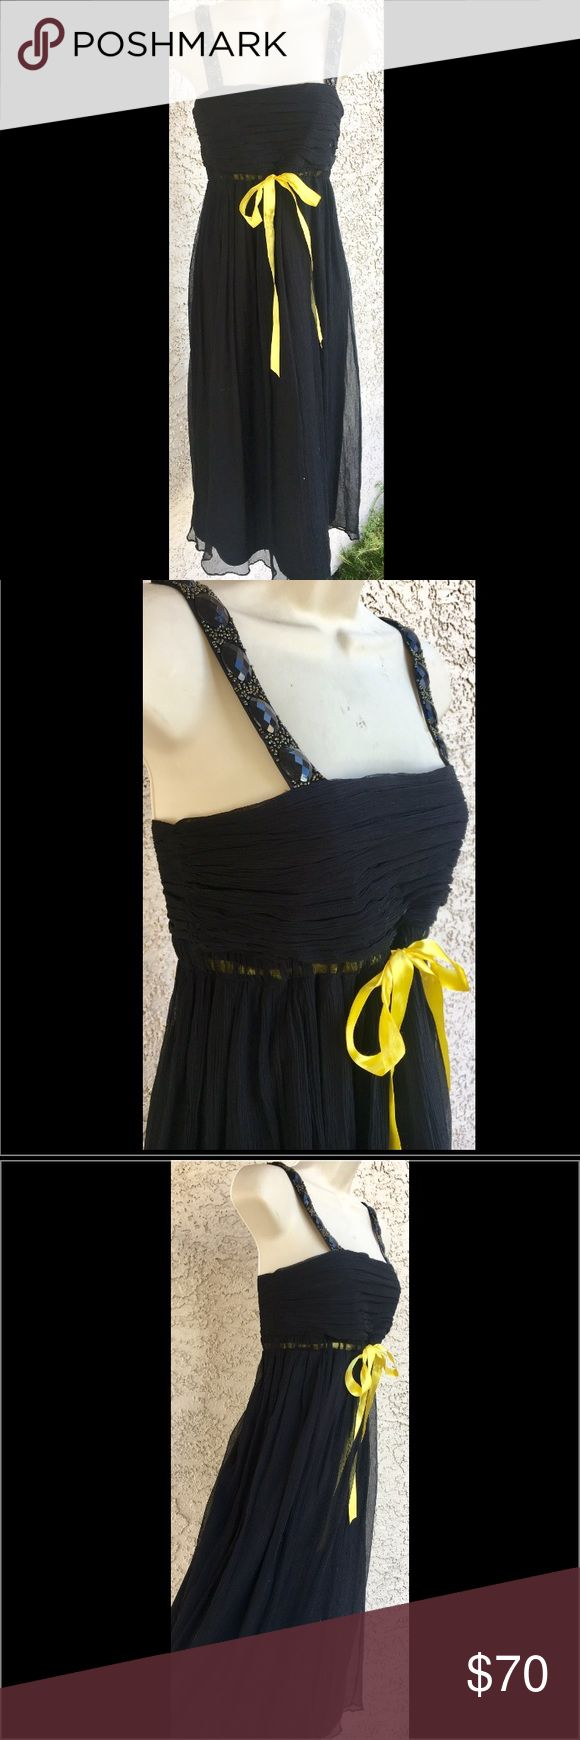 Laundry Shelli Segal Black Silk Chiffon Dress 4 Laundry by Shelli Segal. Black Silk Babydoll Dress. Size 4. Fully lined 97% Silk Chiffon Flowy Midi Dress. Yellow Satin ribbon at empire waistline. Straps are adorned with subtle beading and large black stones. Ruched Pleated Bustline. Side zipper closure. Perfect dress for summer nights ! Laundry by Shelli Segal Dresses Midi